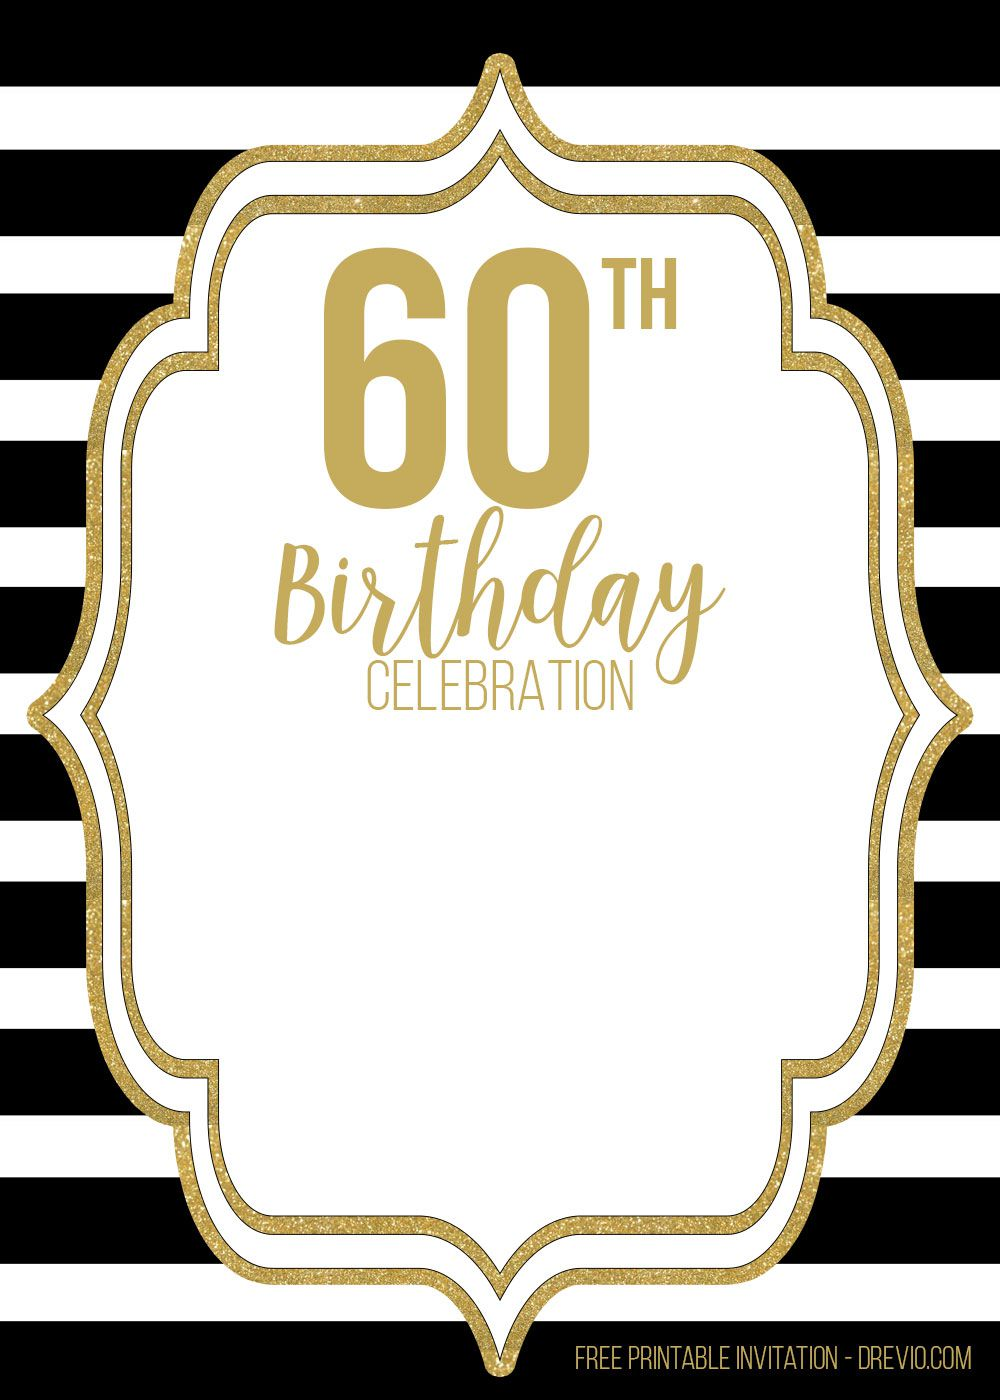 009 Sensational 60th Birthday Invite Template Picture  Templates Funny Invitation Free PartyFull